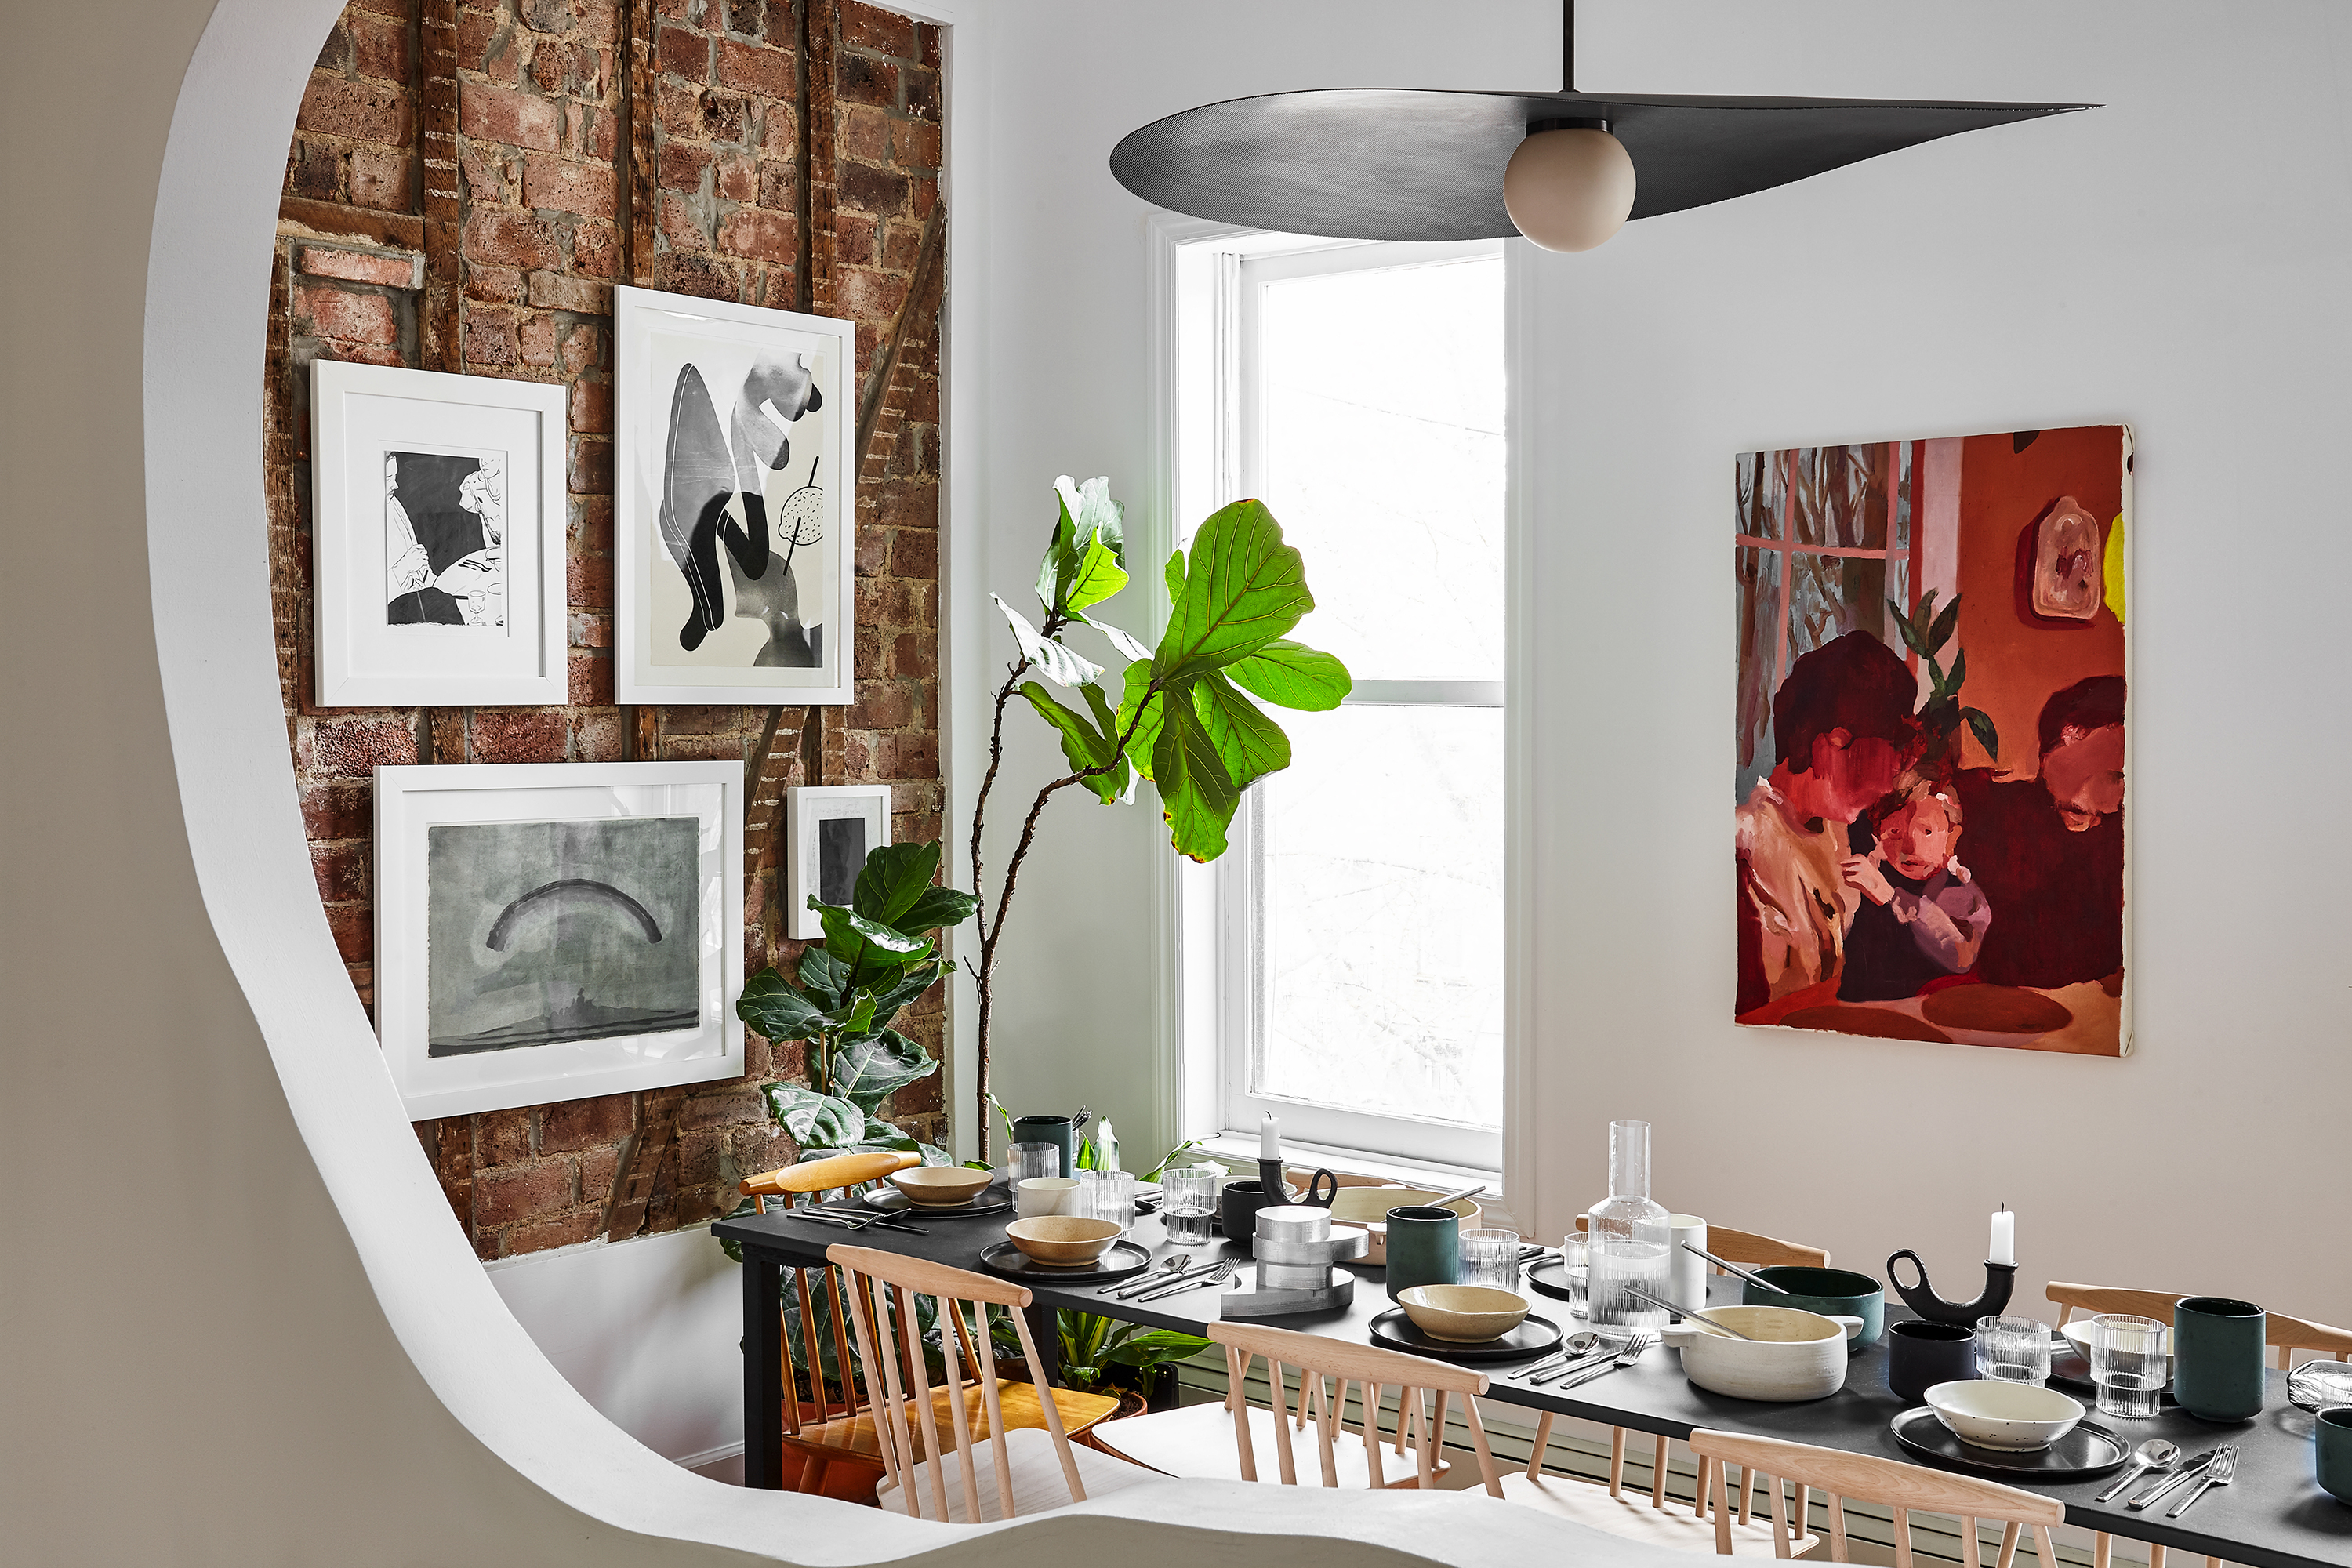 A dining room. One wall is exposed brick and has several framed works of art hanging on it. The other wall is painted white with one work of art hanging on it. There is a long table with chairs. A large houseplant sits next to the brick wall.